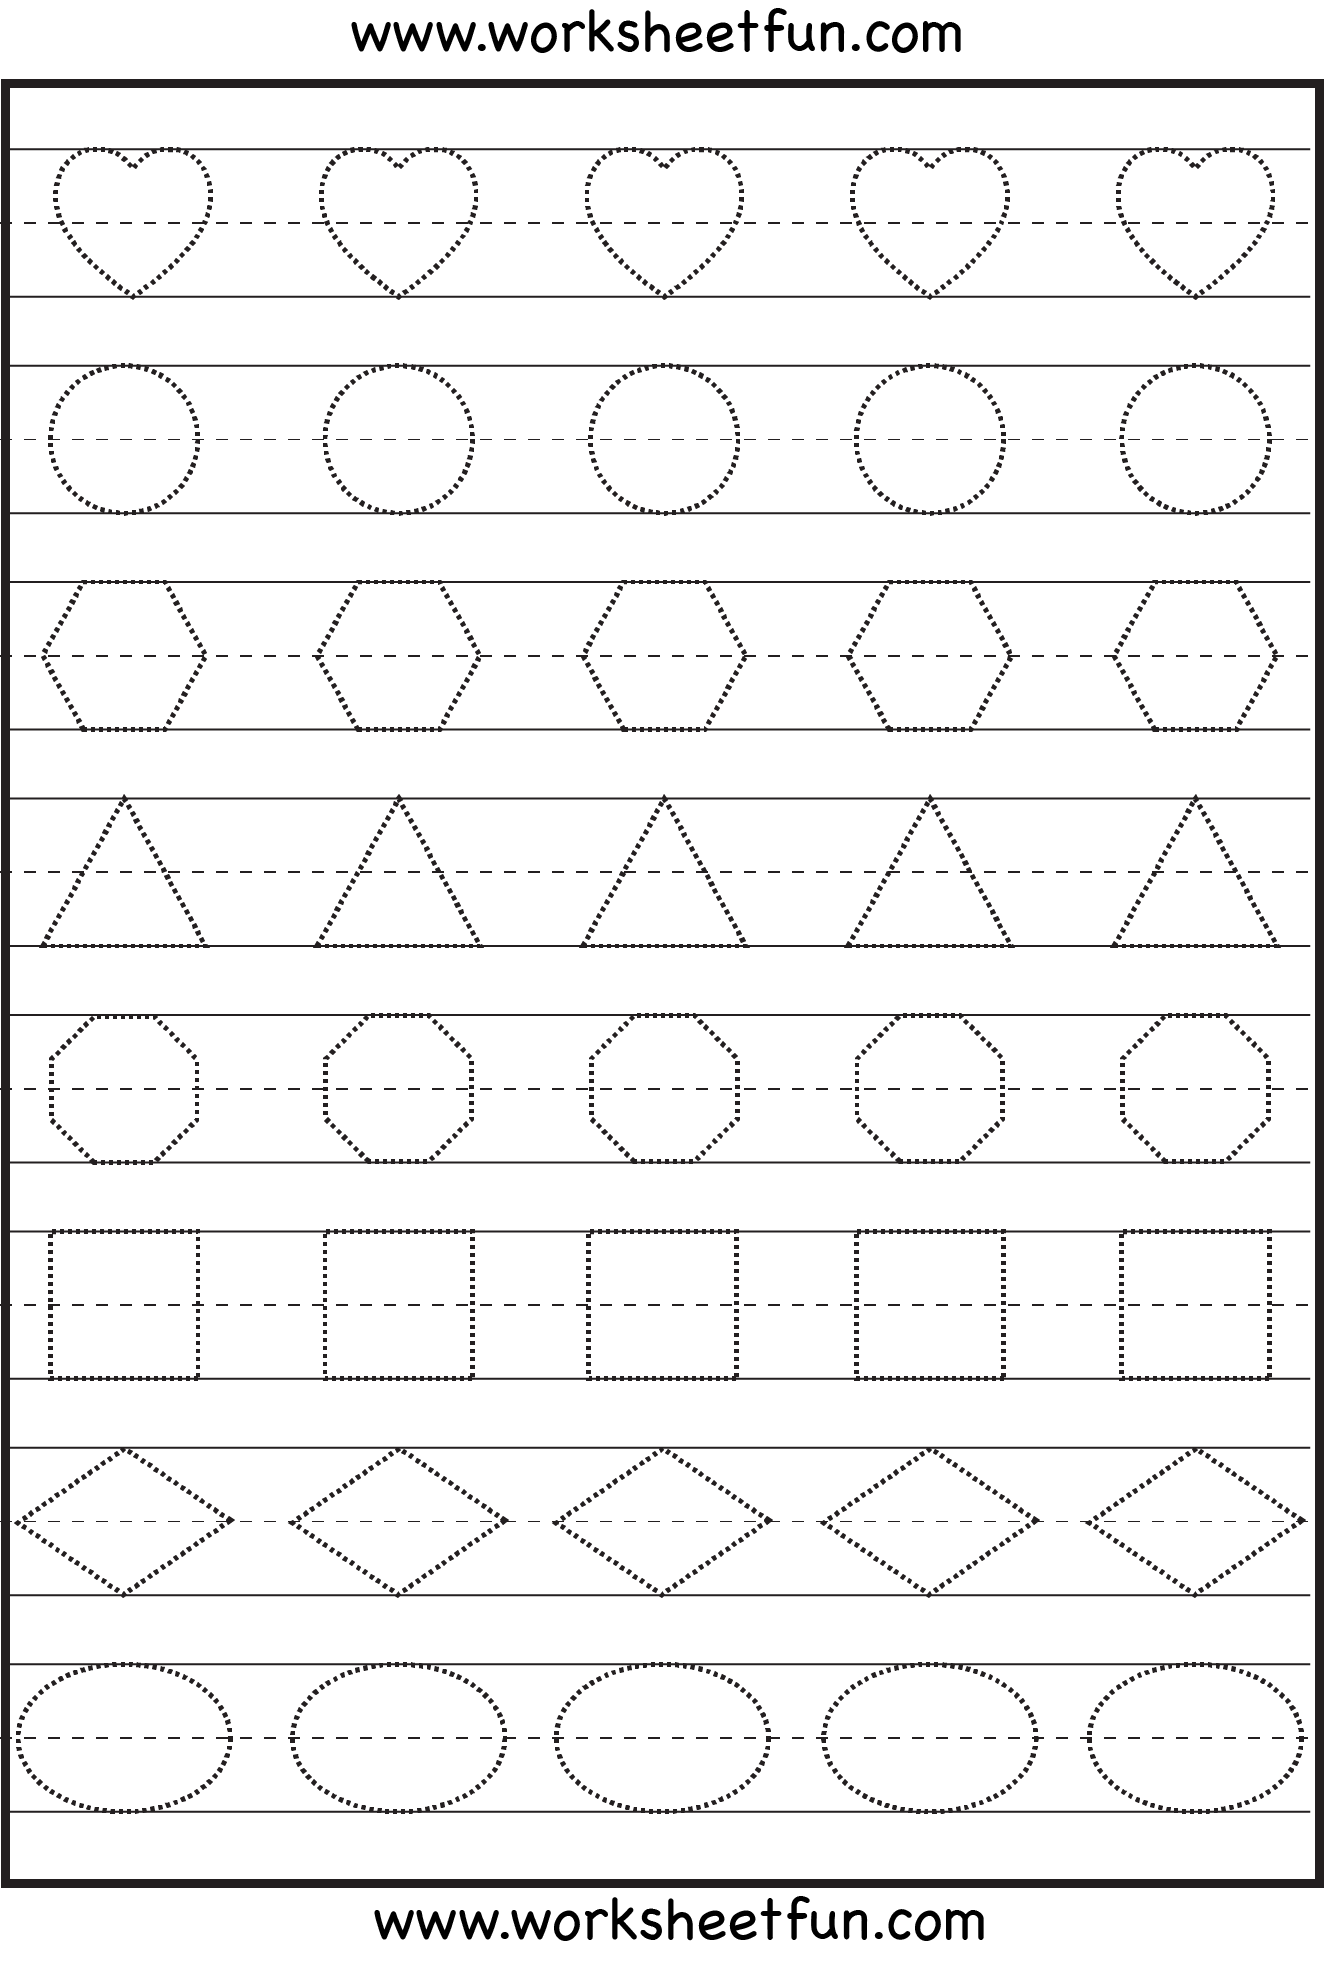 Worksheets Free Printable Tracing Worksheets For Preschoolers 1000 images about kallu on pinterest printable alphabet letters preschool worksheets and preschool